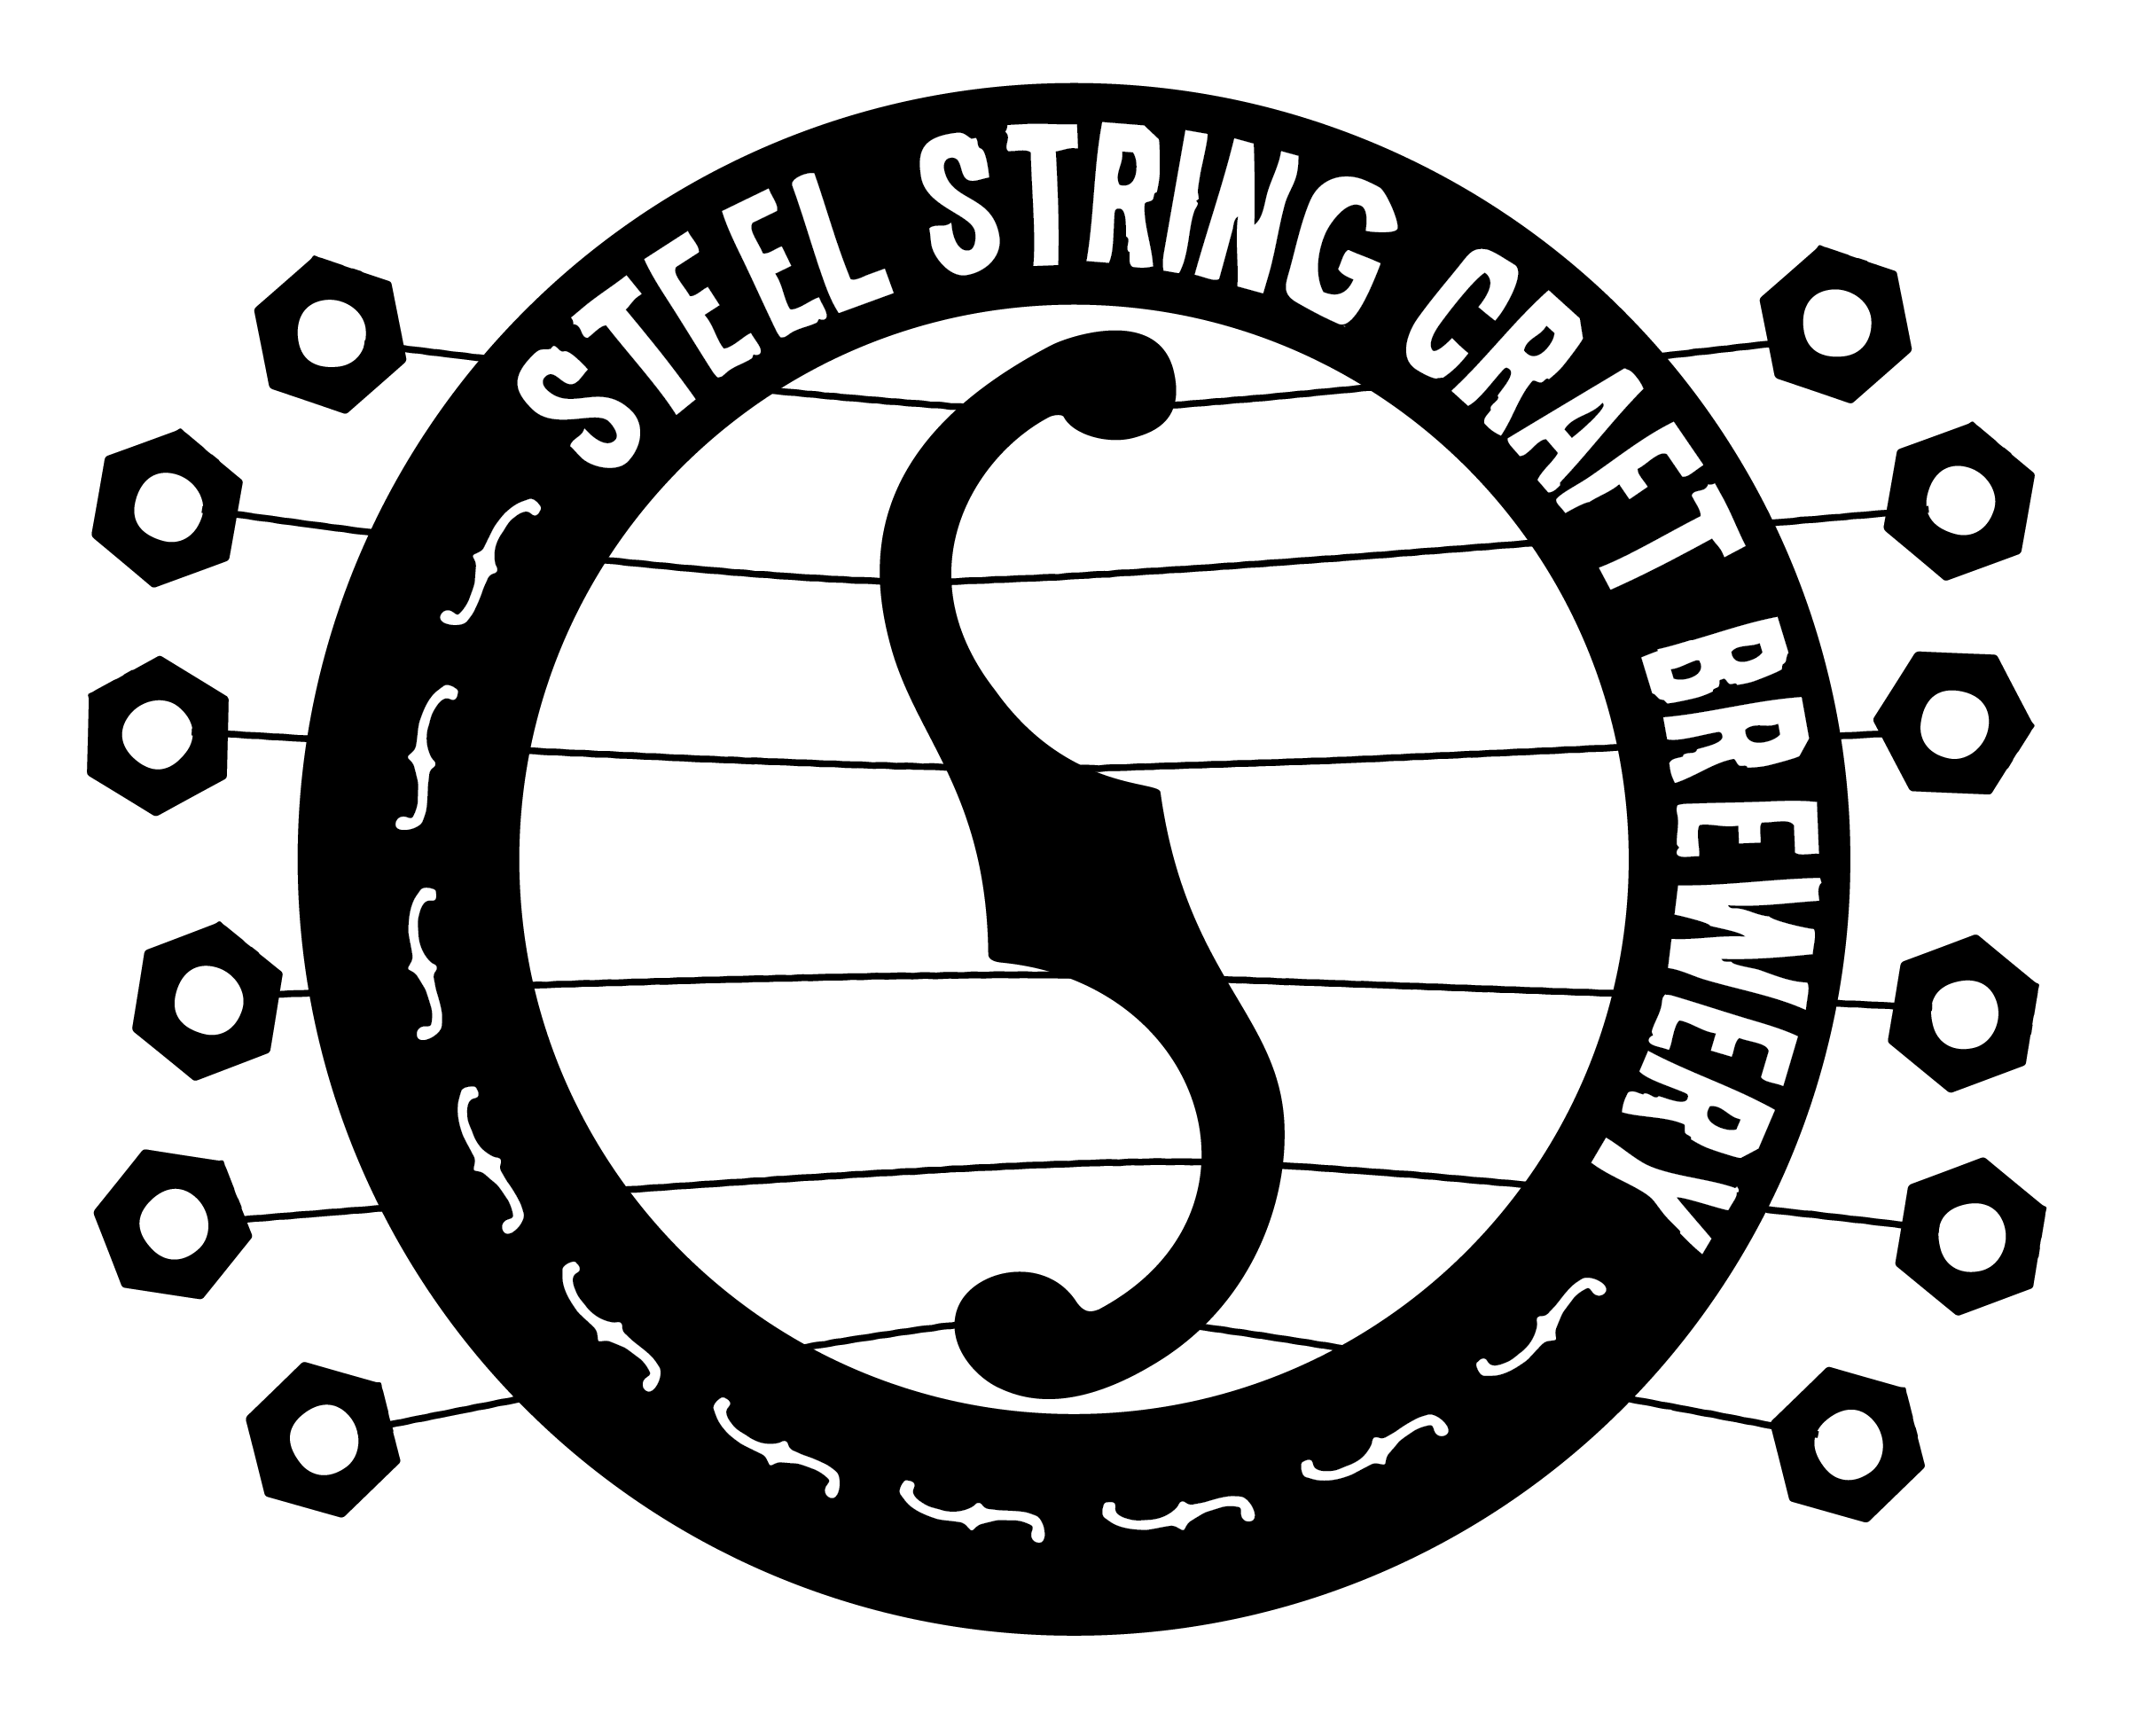 Steel String Brewery